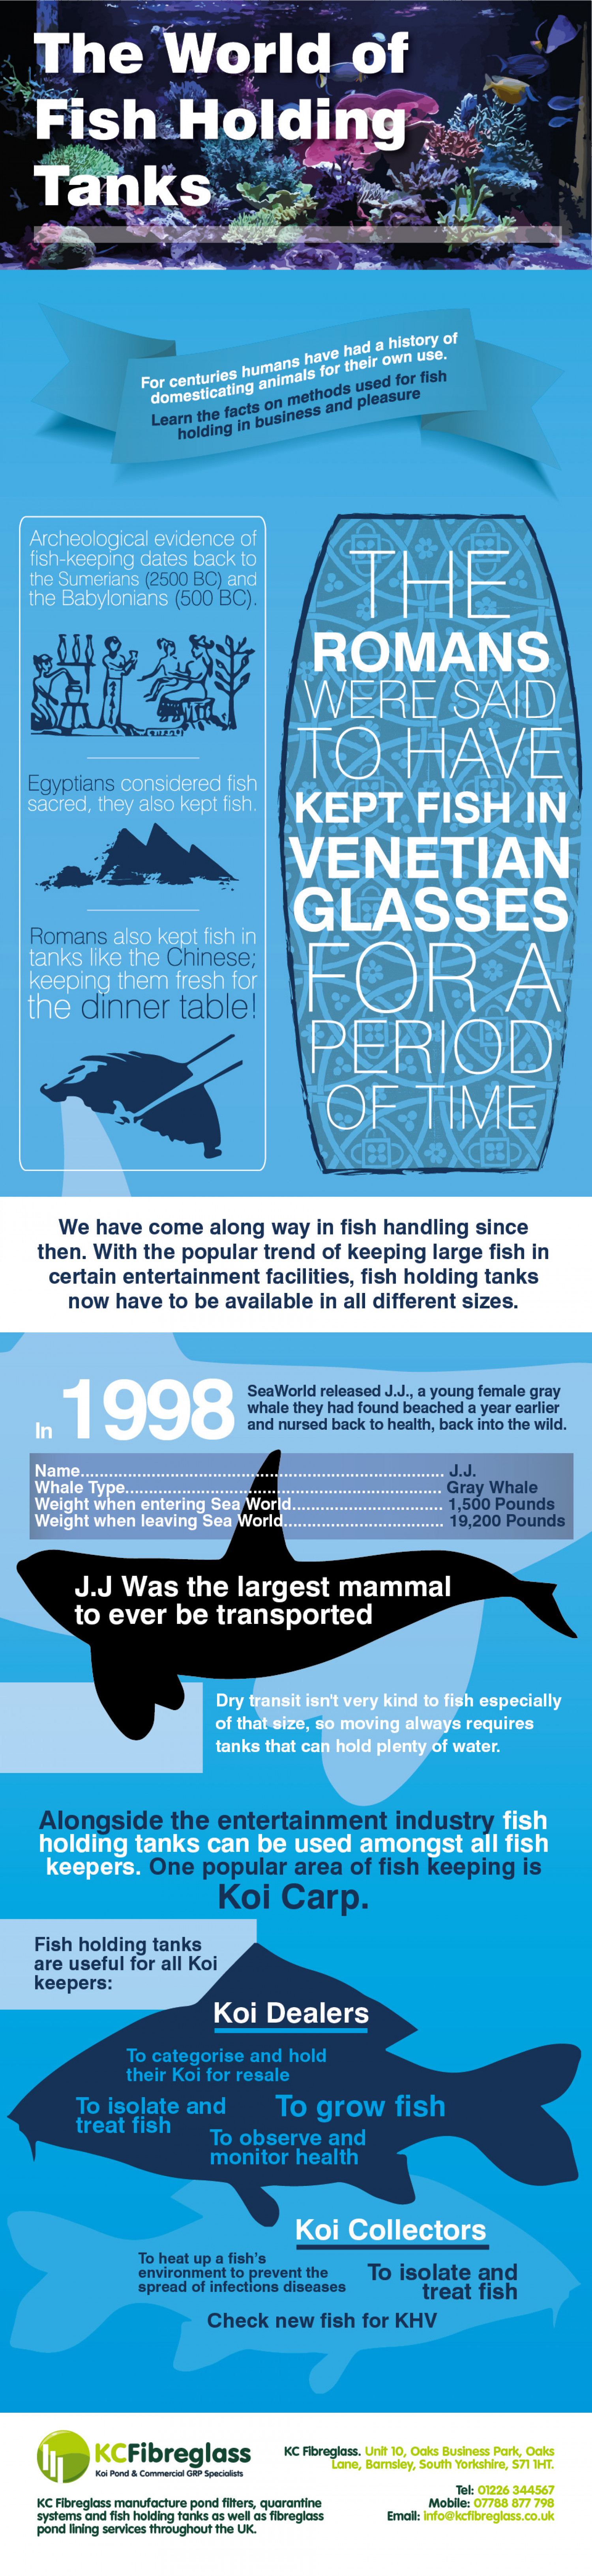 The World of Fish Holding Tanks Infographic